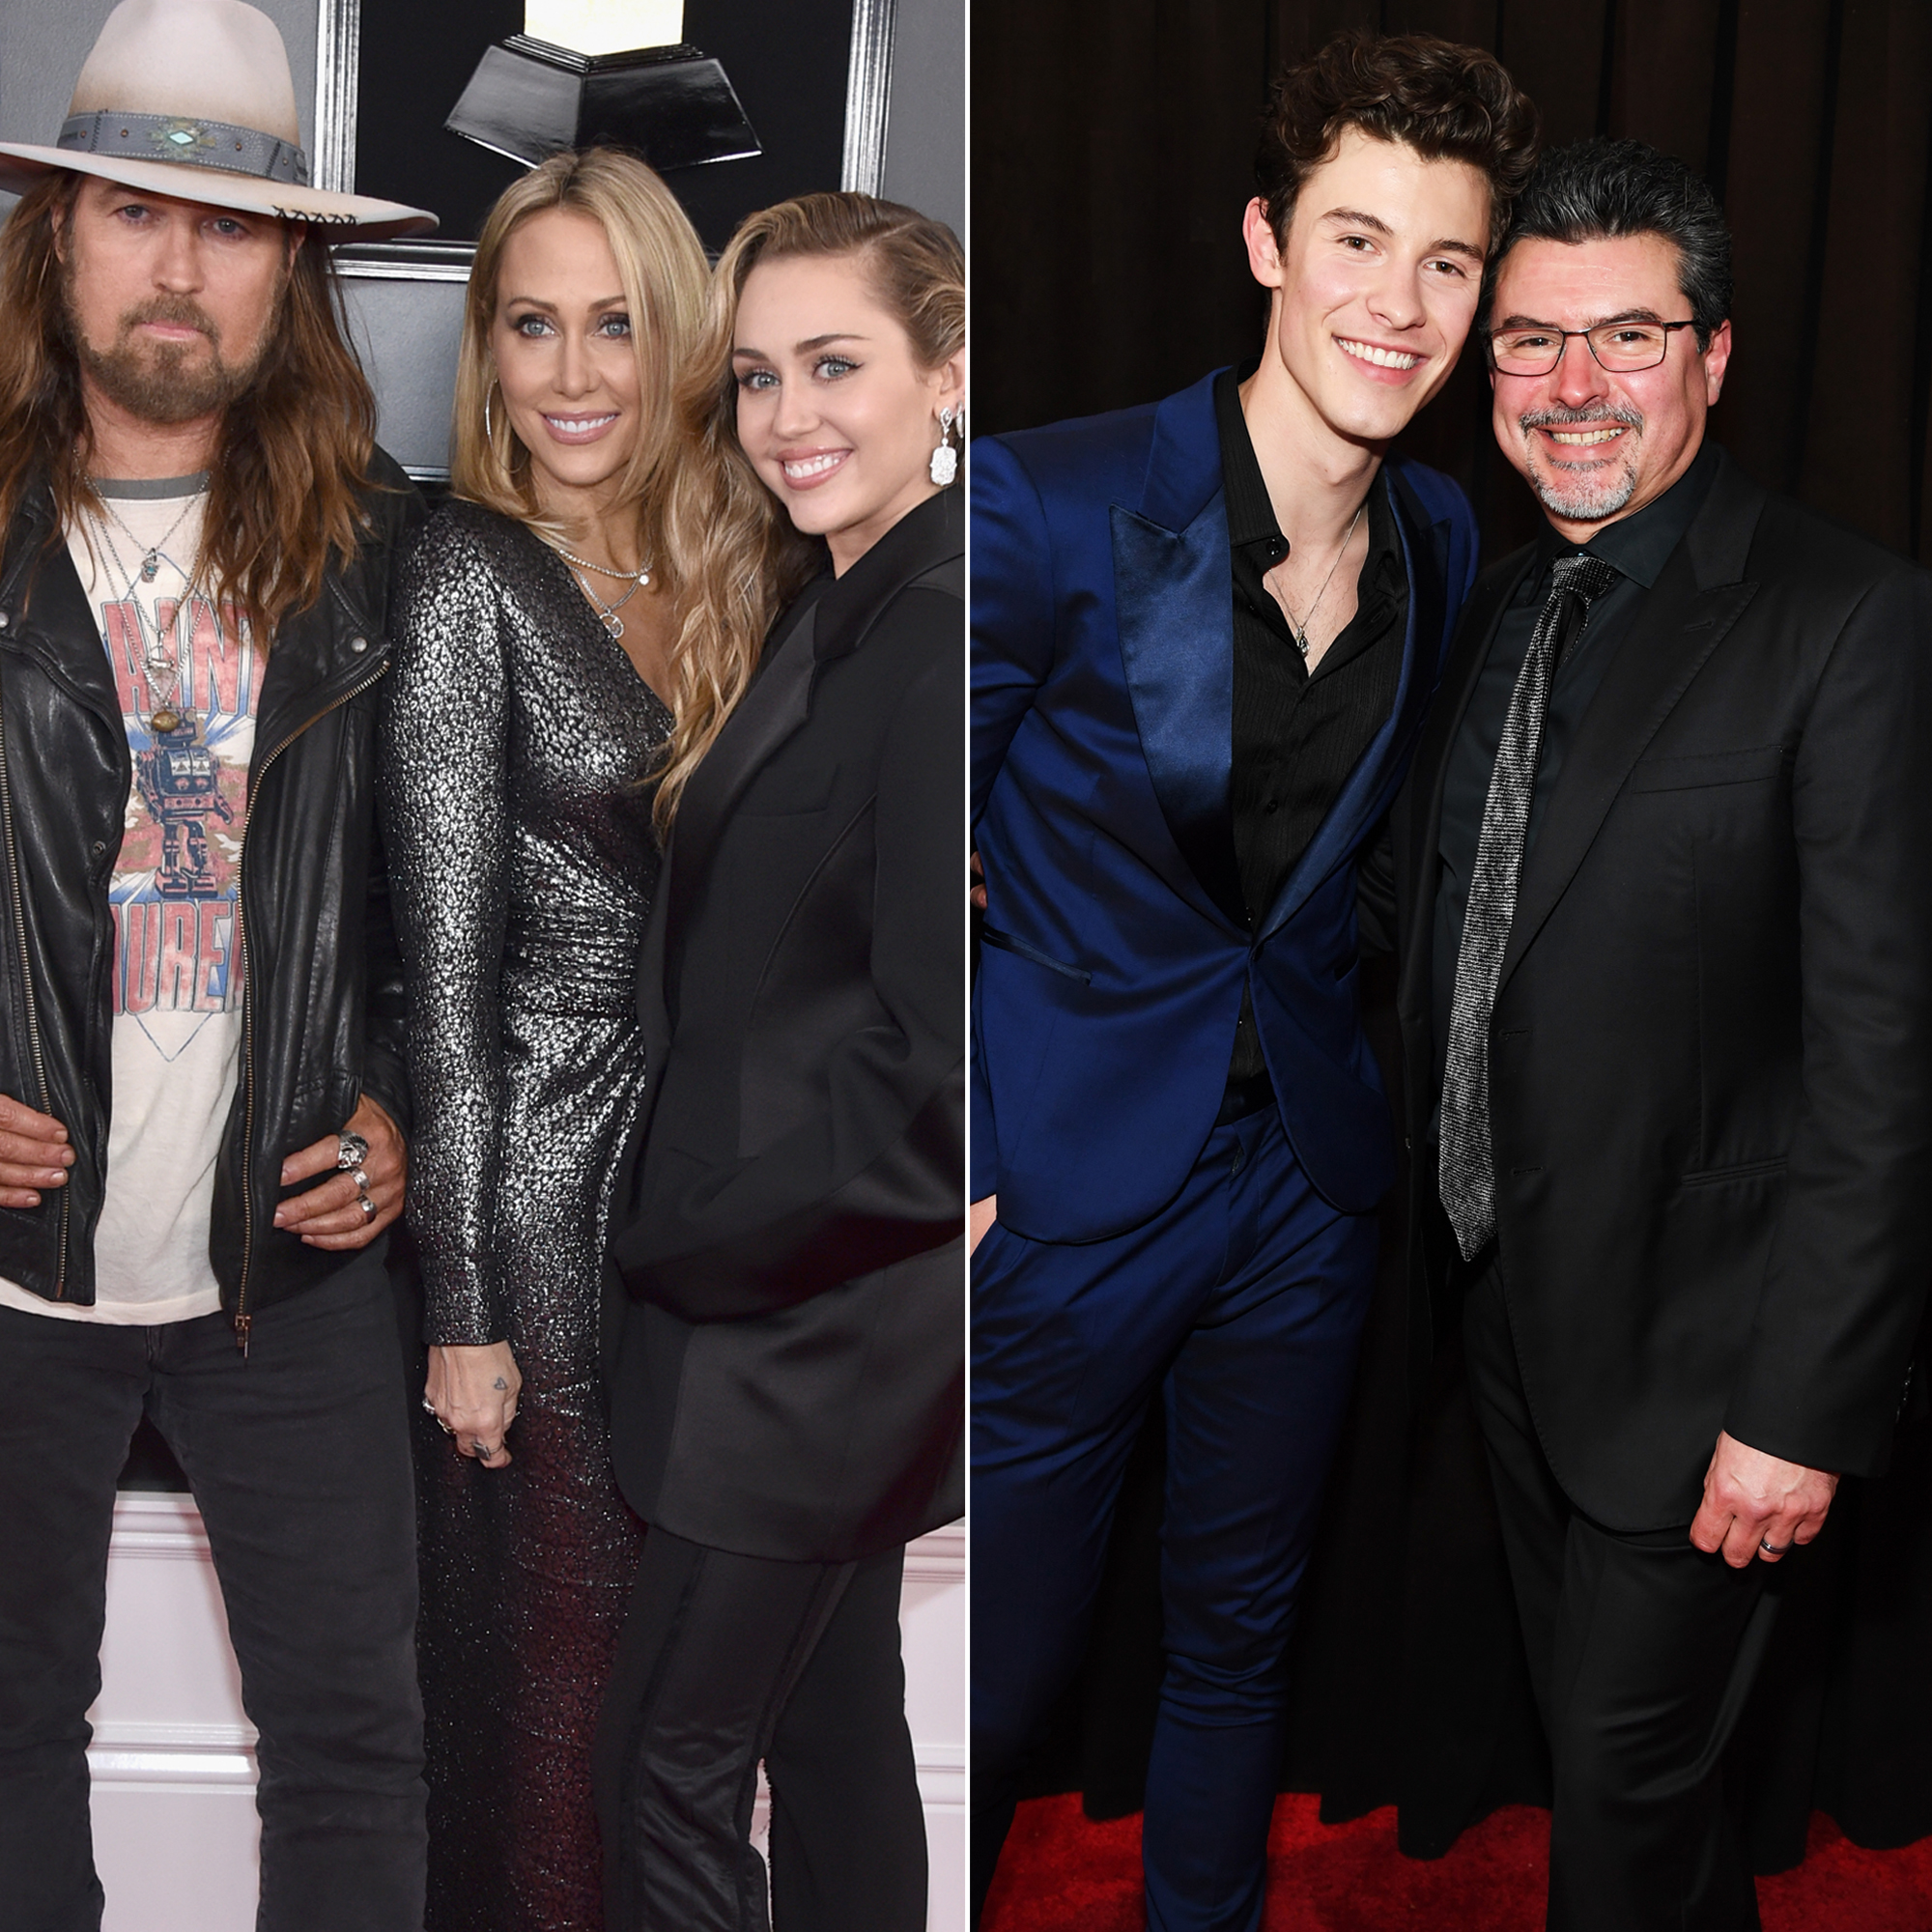 Grammys 2019: Shawn Mendes, Miley Cyrus and More Stars Who Brought Family Members as Dates - Billy Ray Cyrus, Tish Cyrus, and Miley Cyrus, along with Shawn Mendes and Manuel Mendes at the 61st Annual GRAMMY Awards at Staples Center on February 10, 2019 in Los Angeles, California.